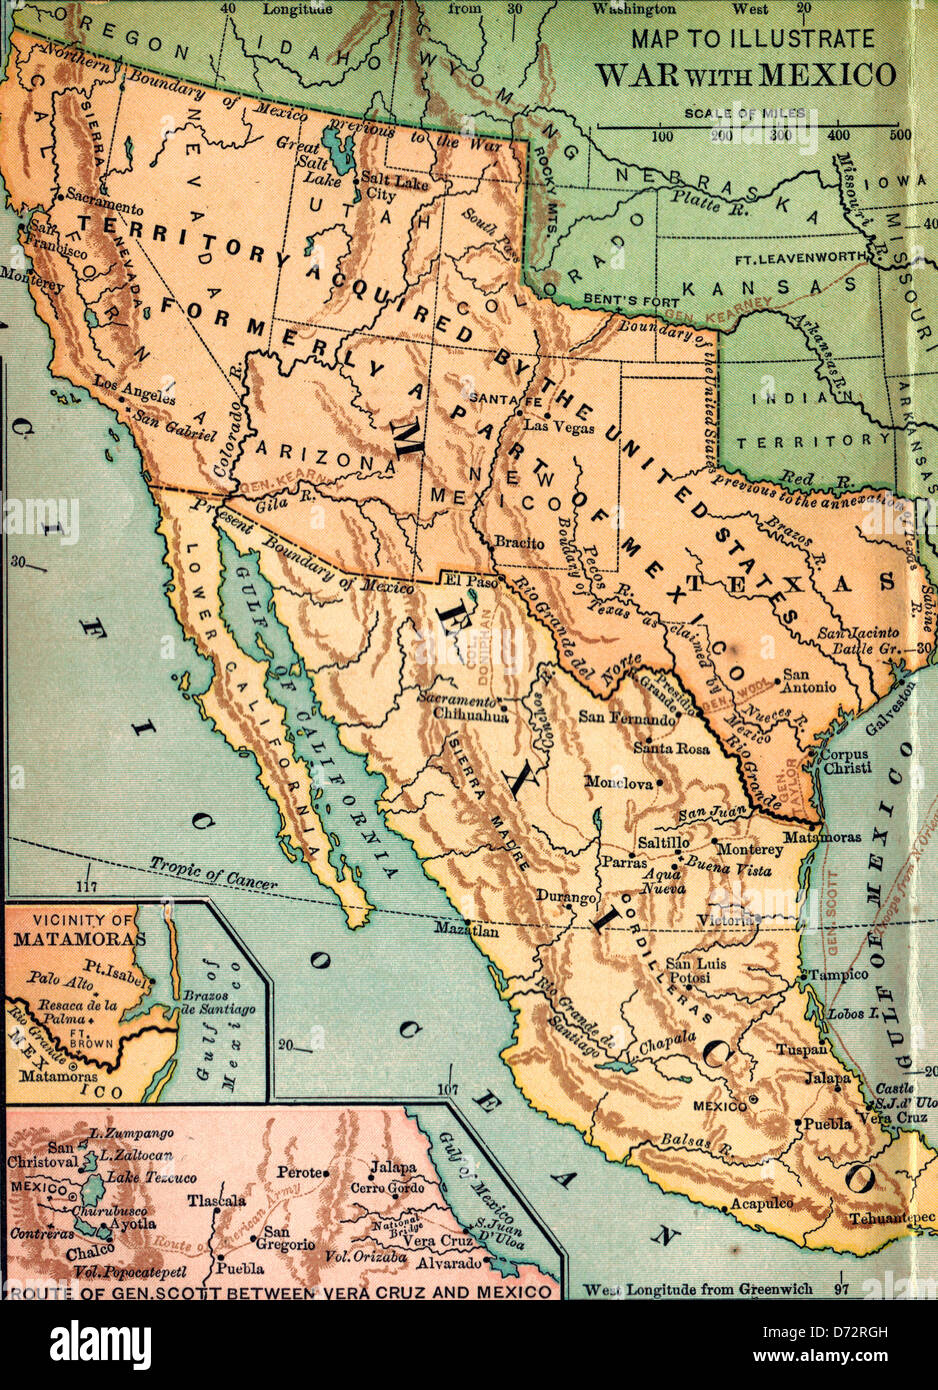 Map To Illustrate USA War With Mexico Stock Photo - Mexico usa map